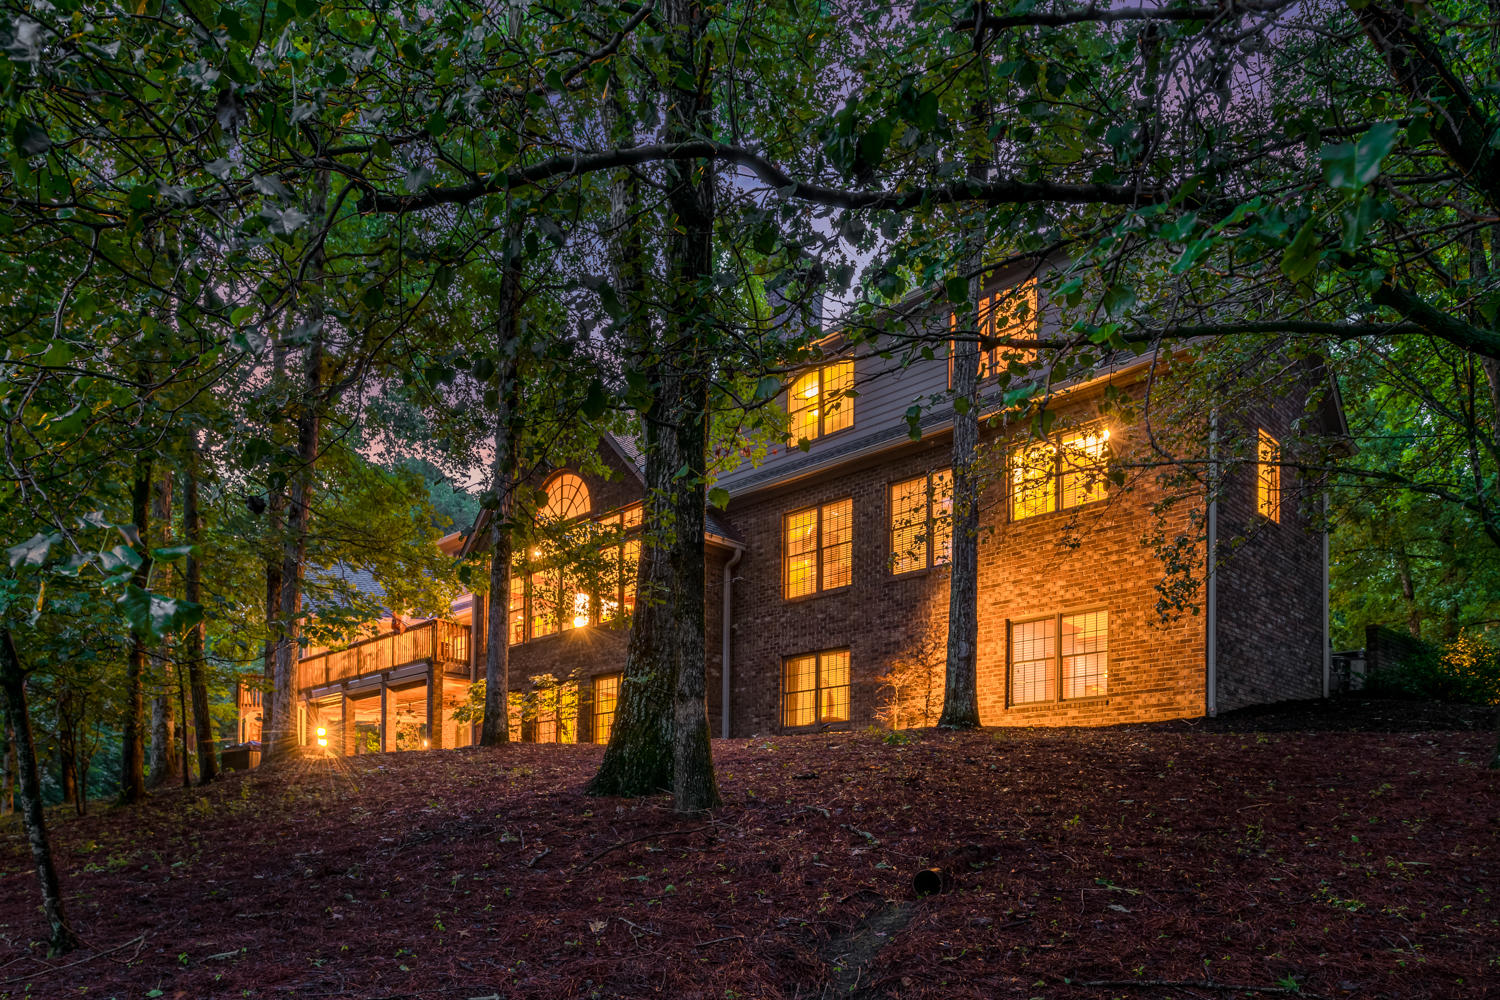 3148 Nw Whippoorwill Dr, Cleveland, TN 37312